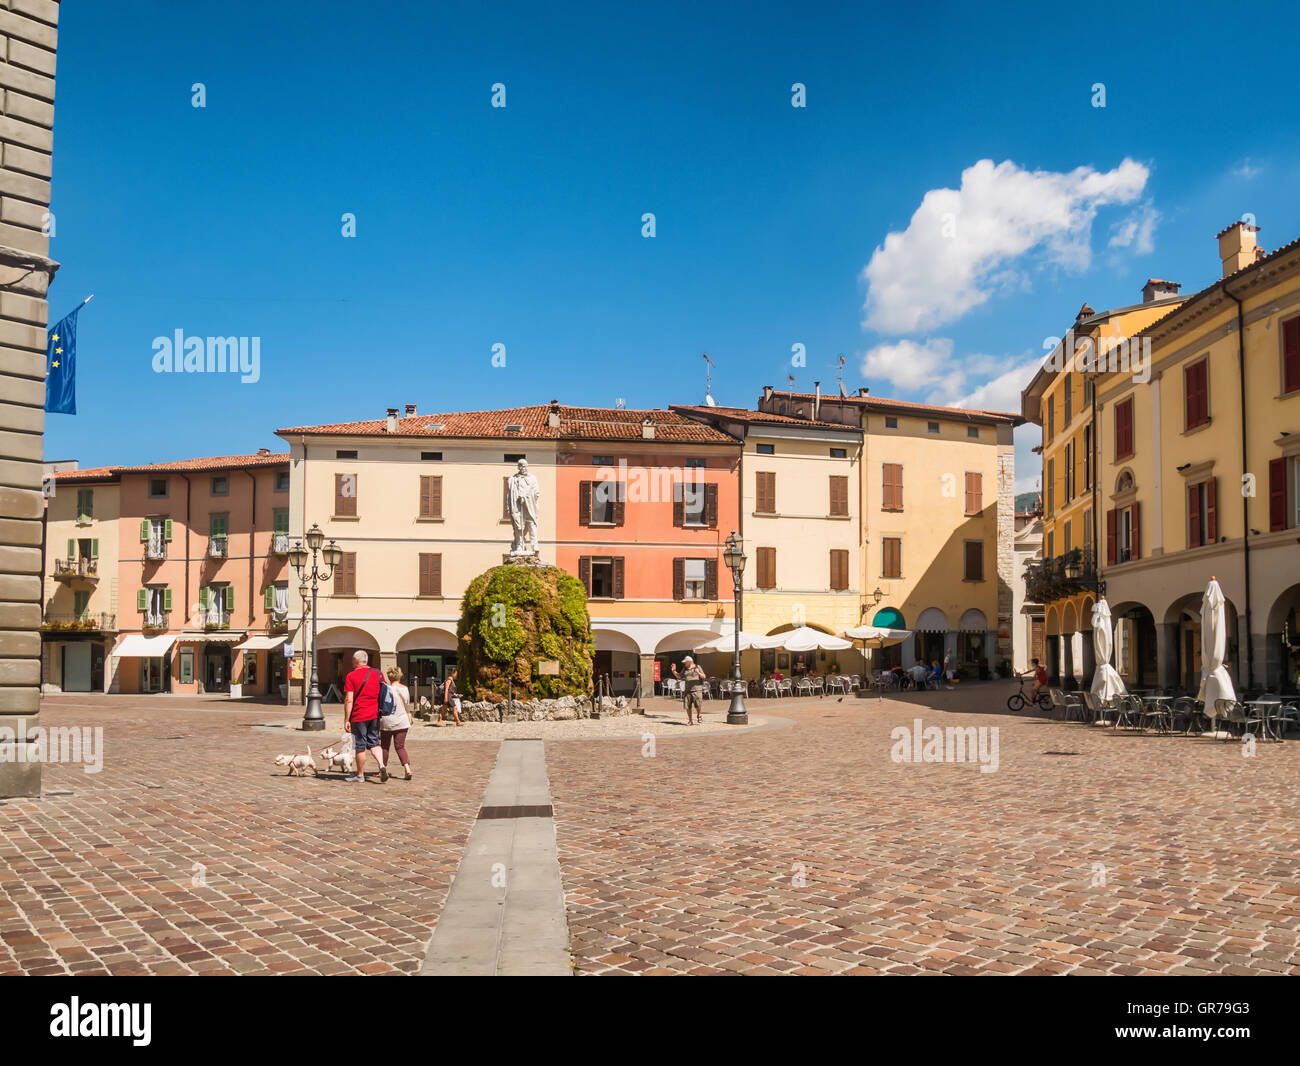 City square in Iseo Village at lake Iseo in Italy - Stock Image